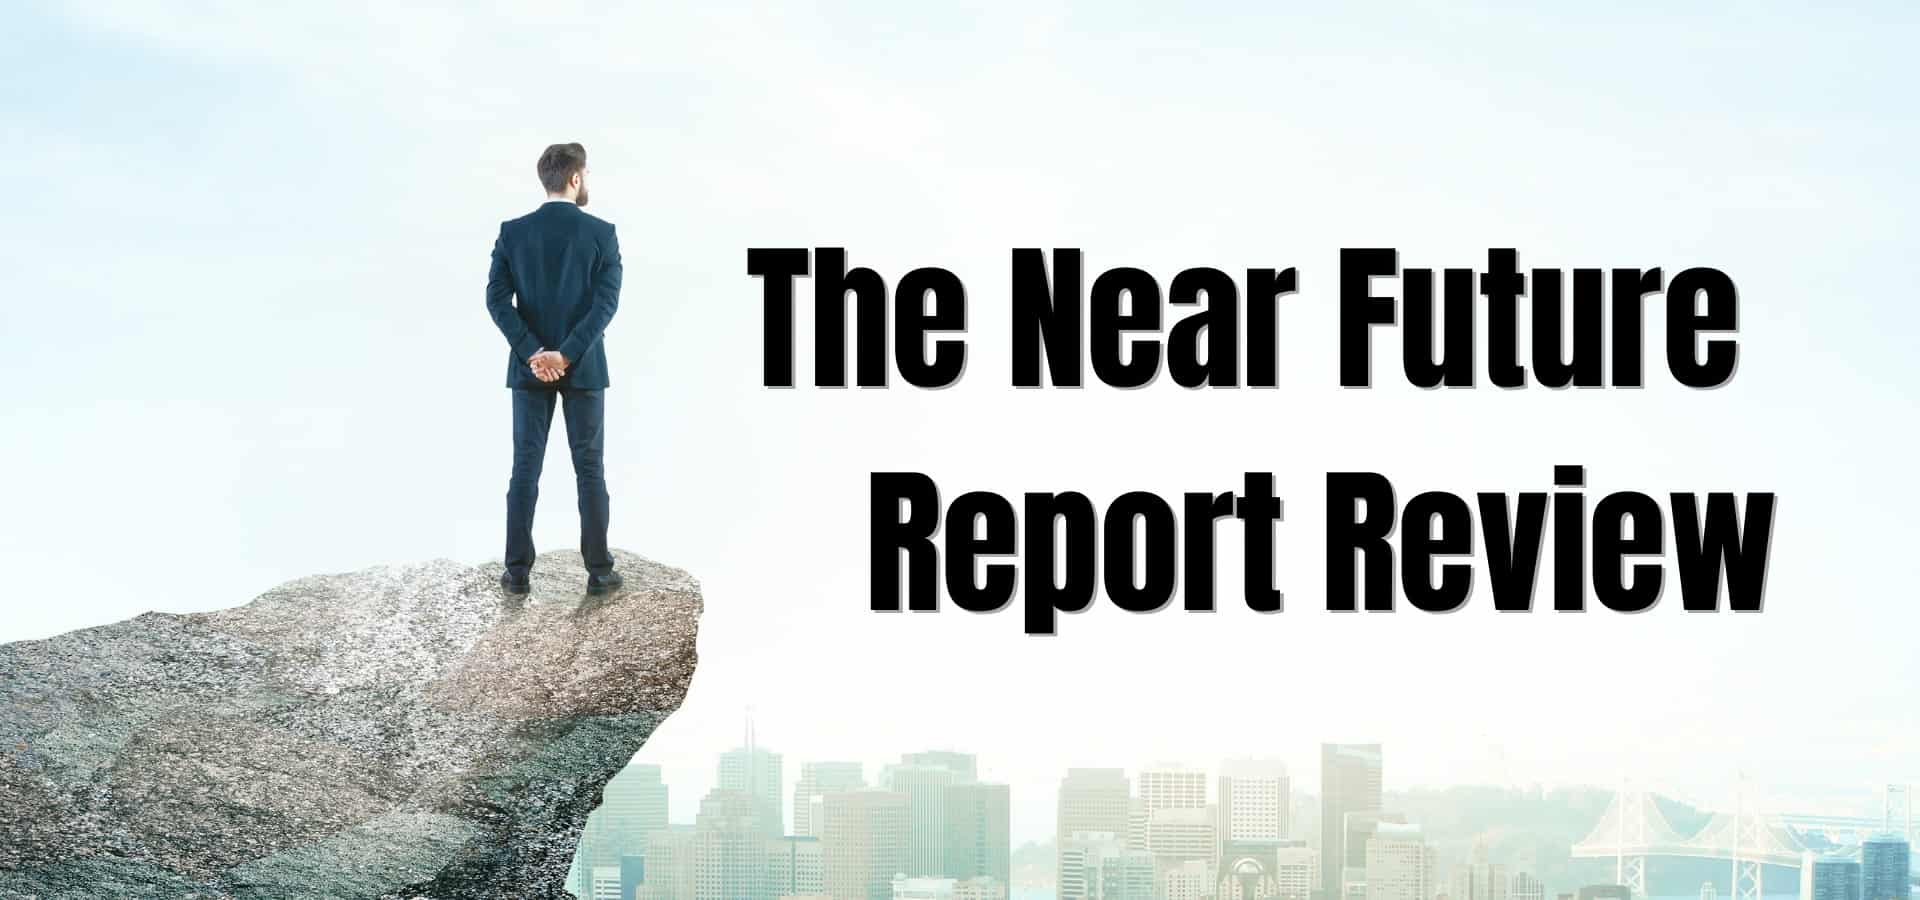 The Near Future Report Review: Is Jeff Brown A Complete Fraud?